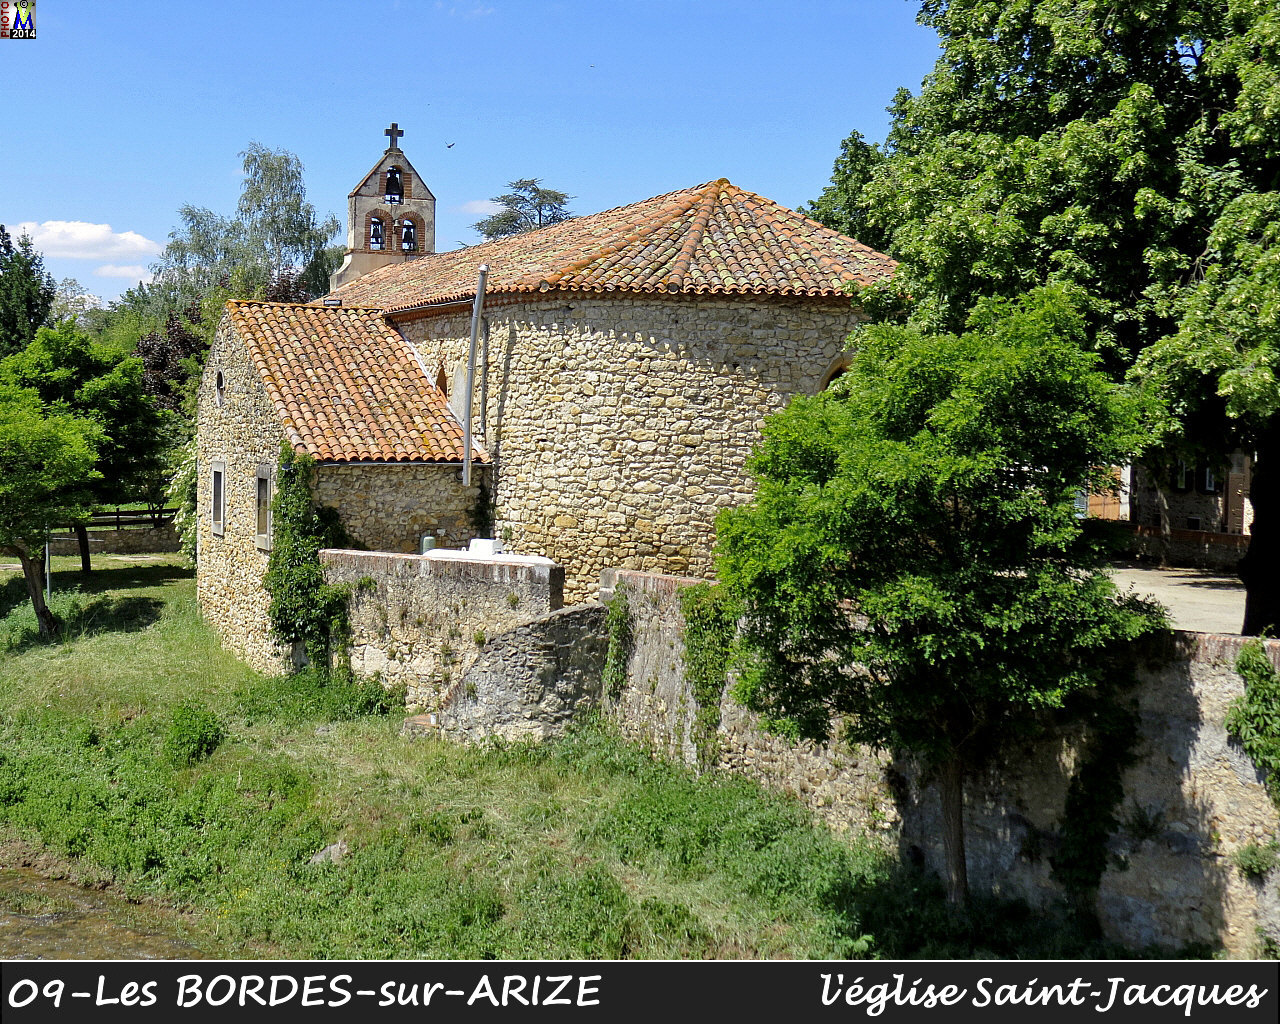 09BORDES-ARIZE_eglise_102.jpg